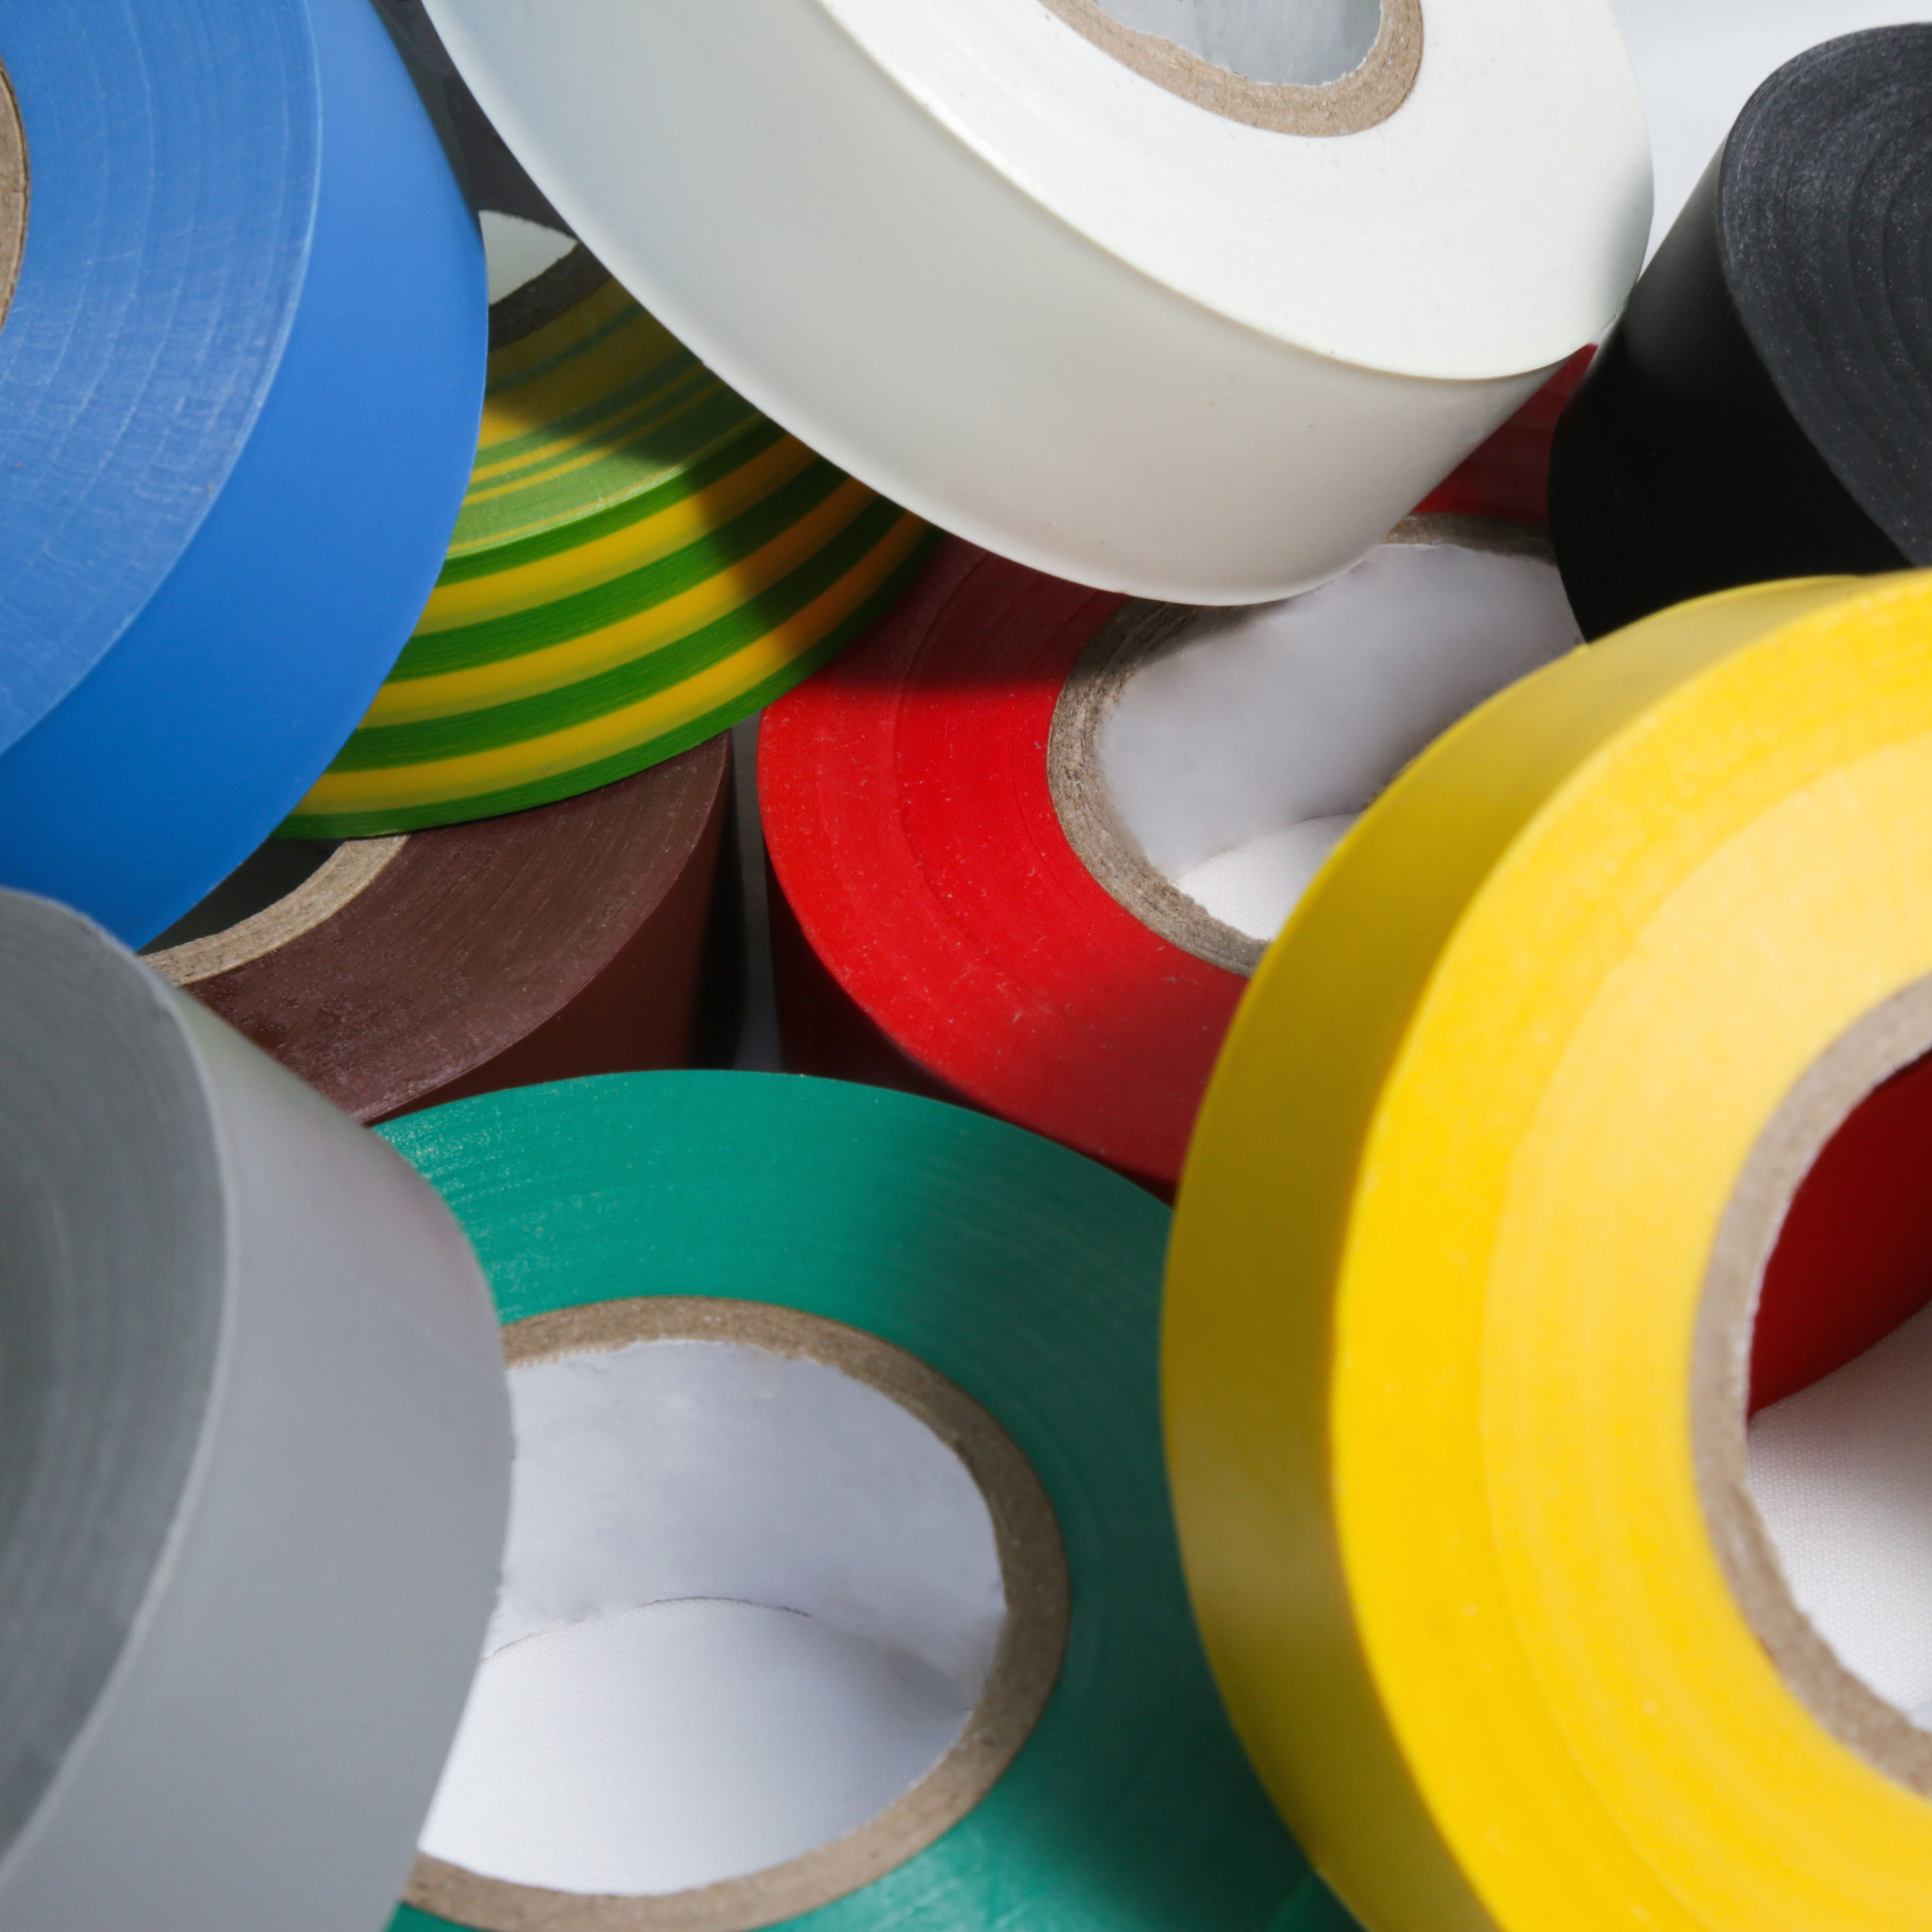 AS401 PVC electrical insulation tape, BS spec and flame retardant